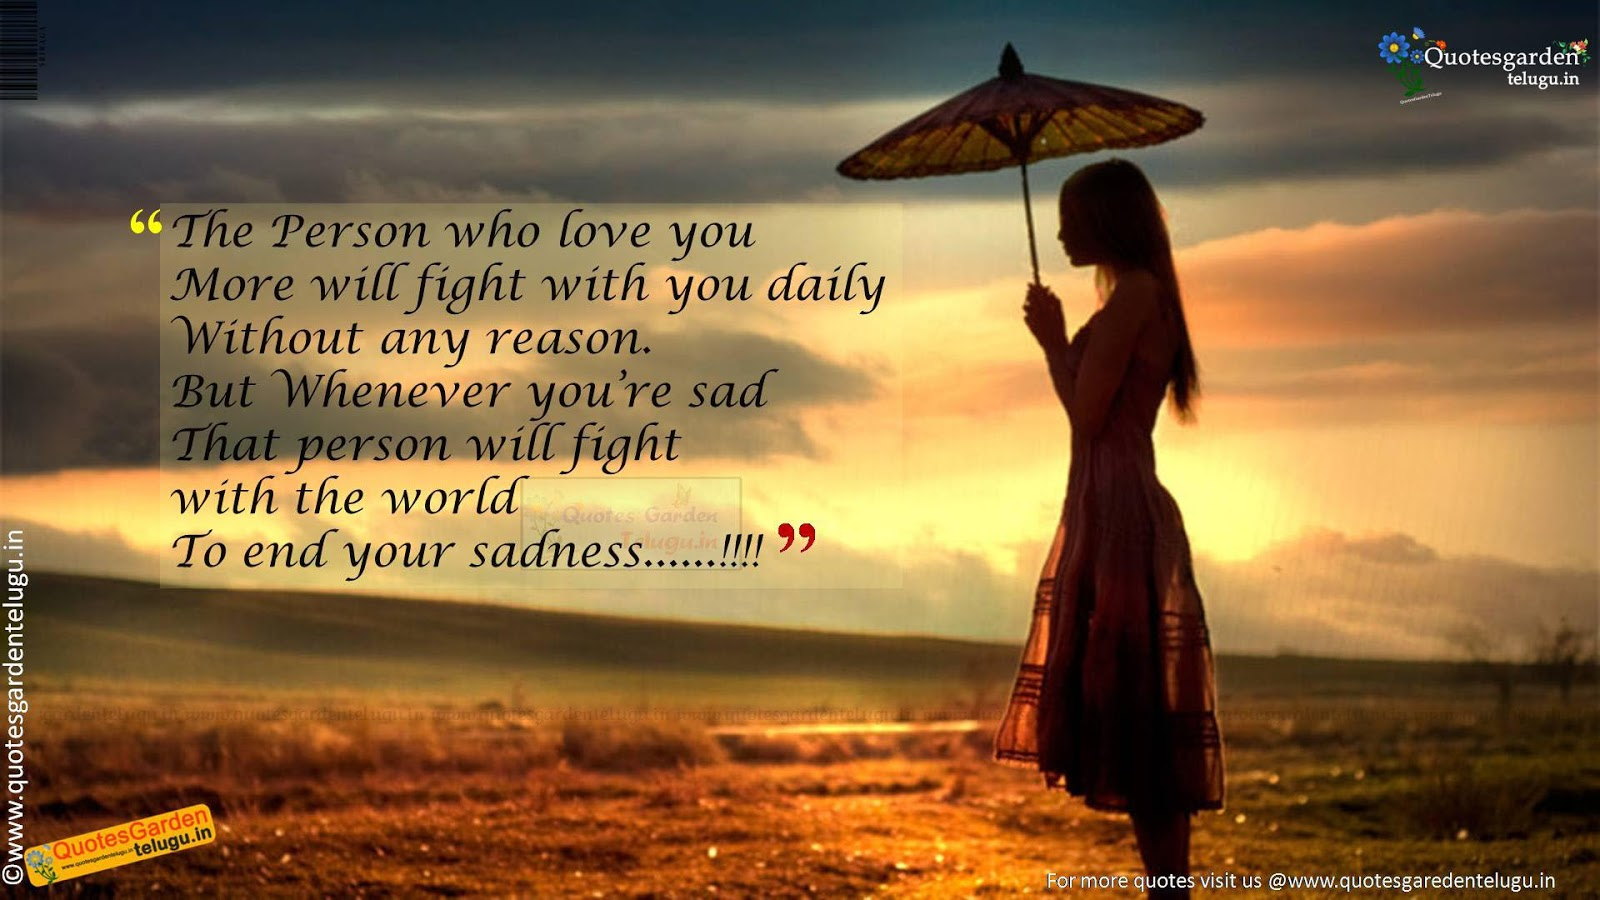 Crying Girl Wallpapers With Quotes Download Best Heart Touching Wallpapers With Quotes Gallery